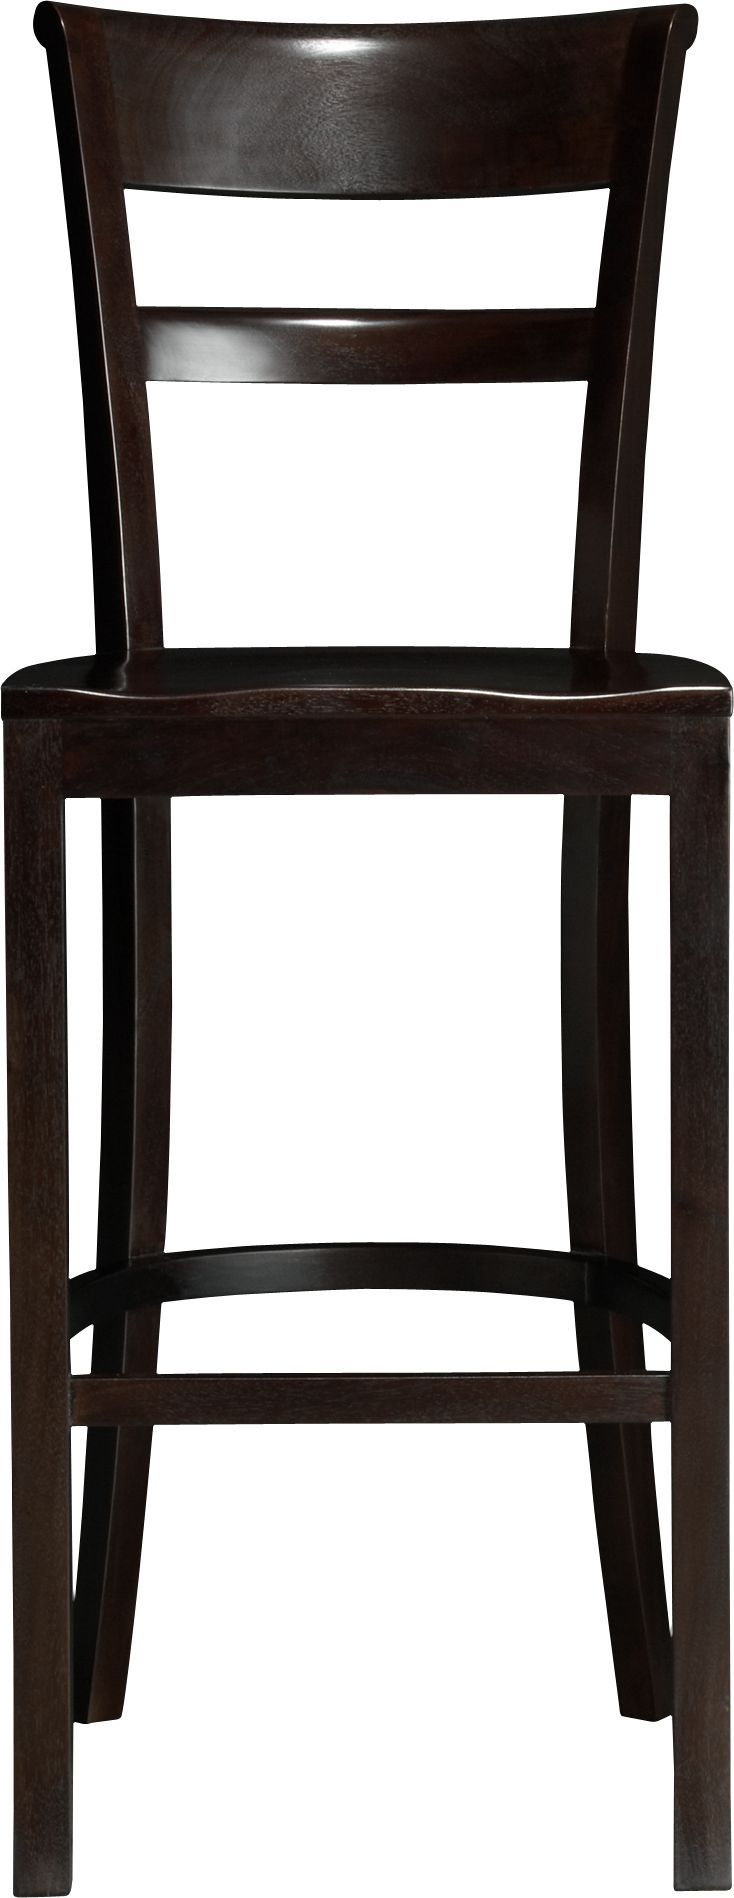 Kitchen Bar Stool Option Crate And Barrel Gardening Landscaping How To Pinterest Crates